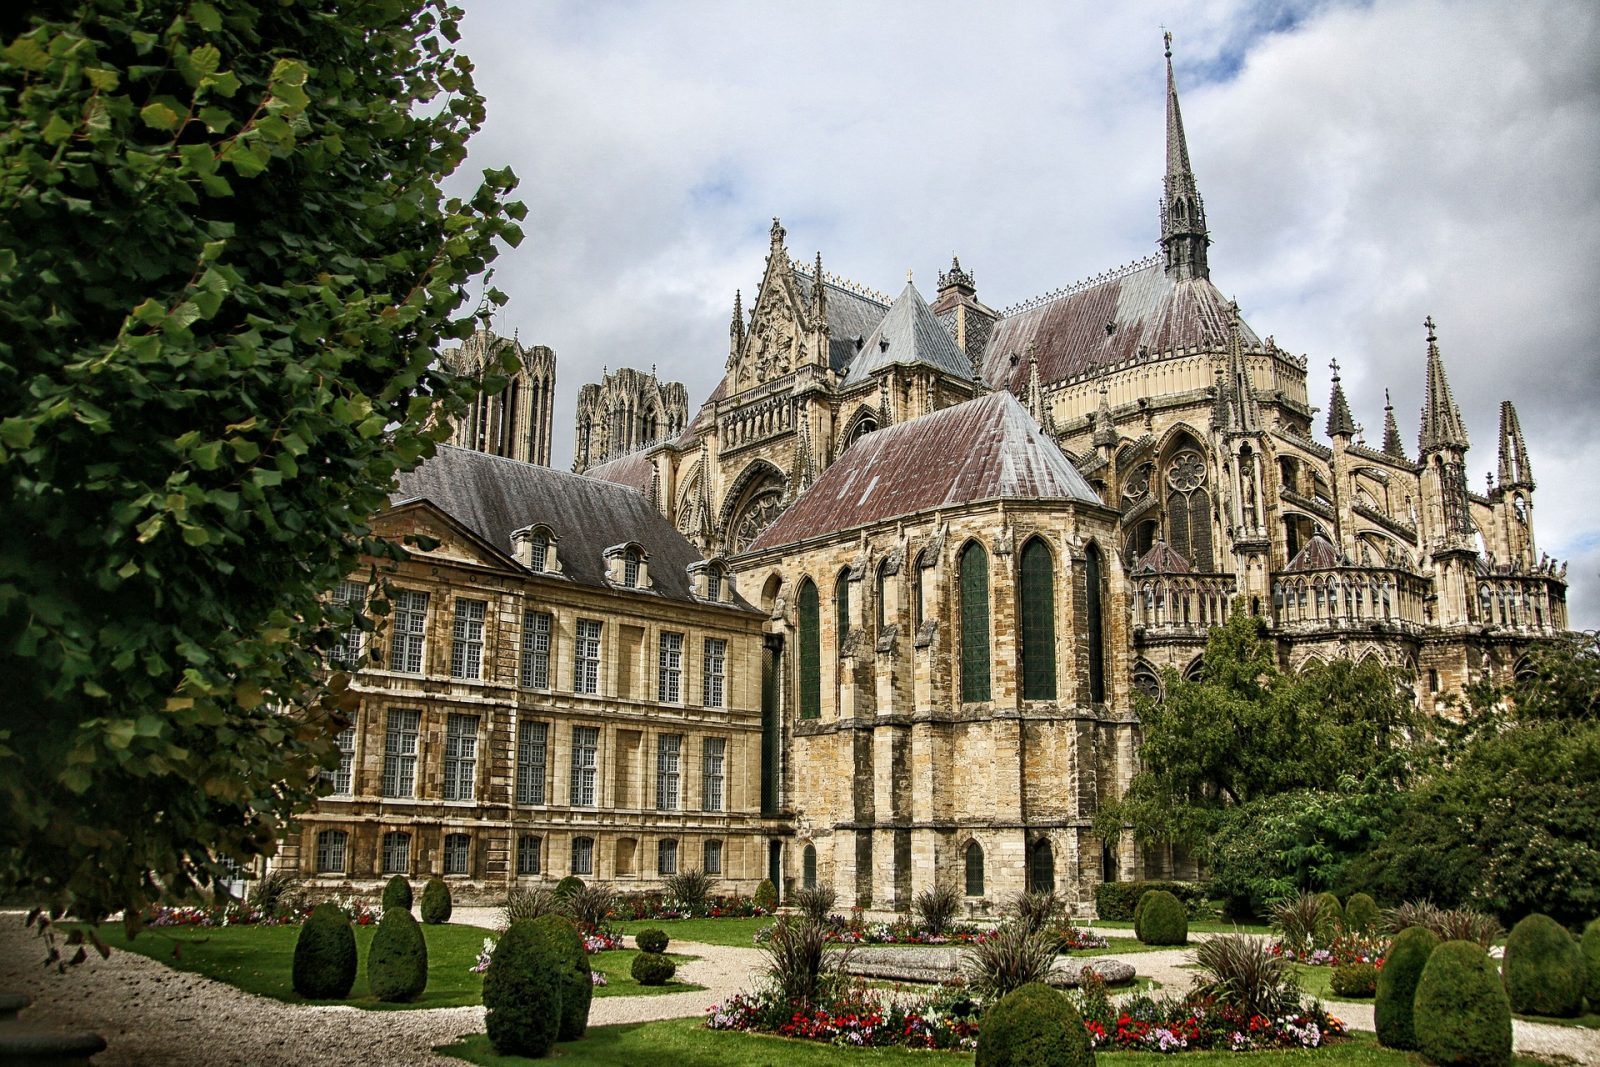 Reims Notre Dame Cathedral in France